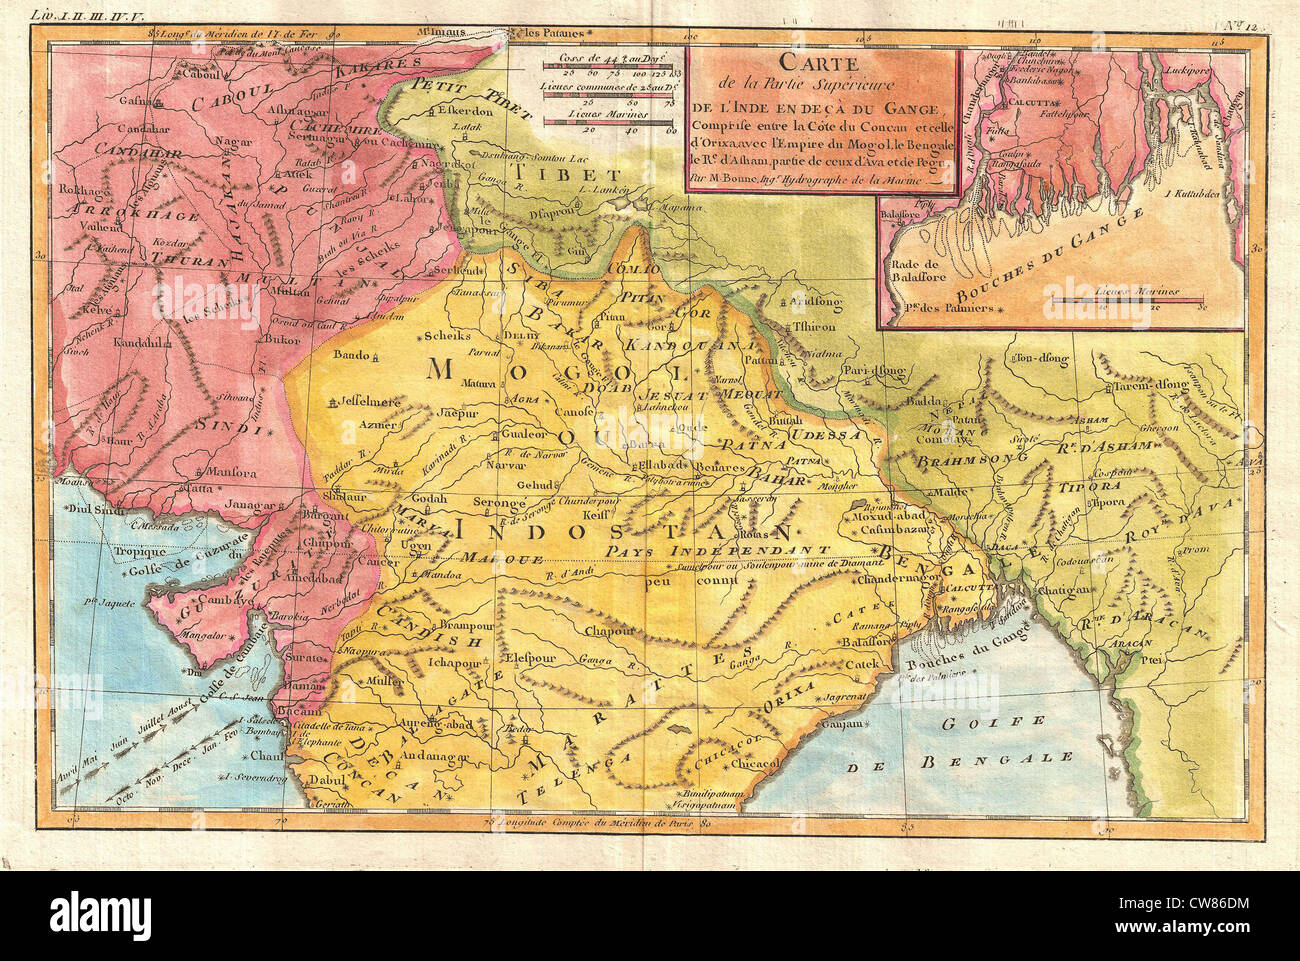 1780 Bonne Map Of Northern India Stock Photo 49967840 Alamy